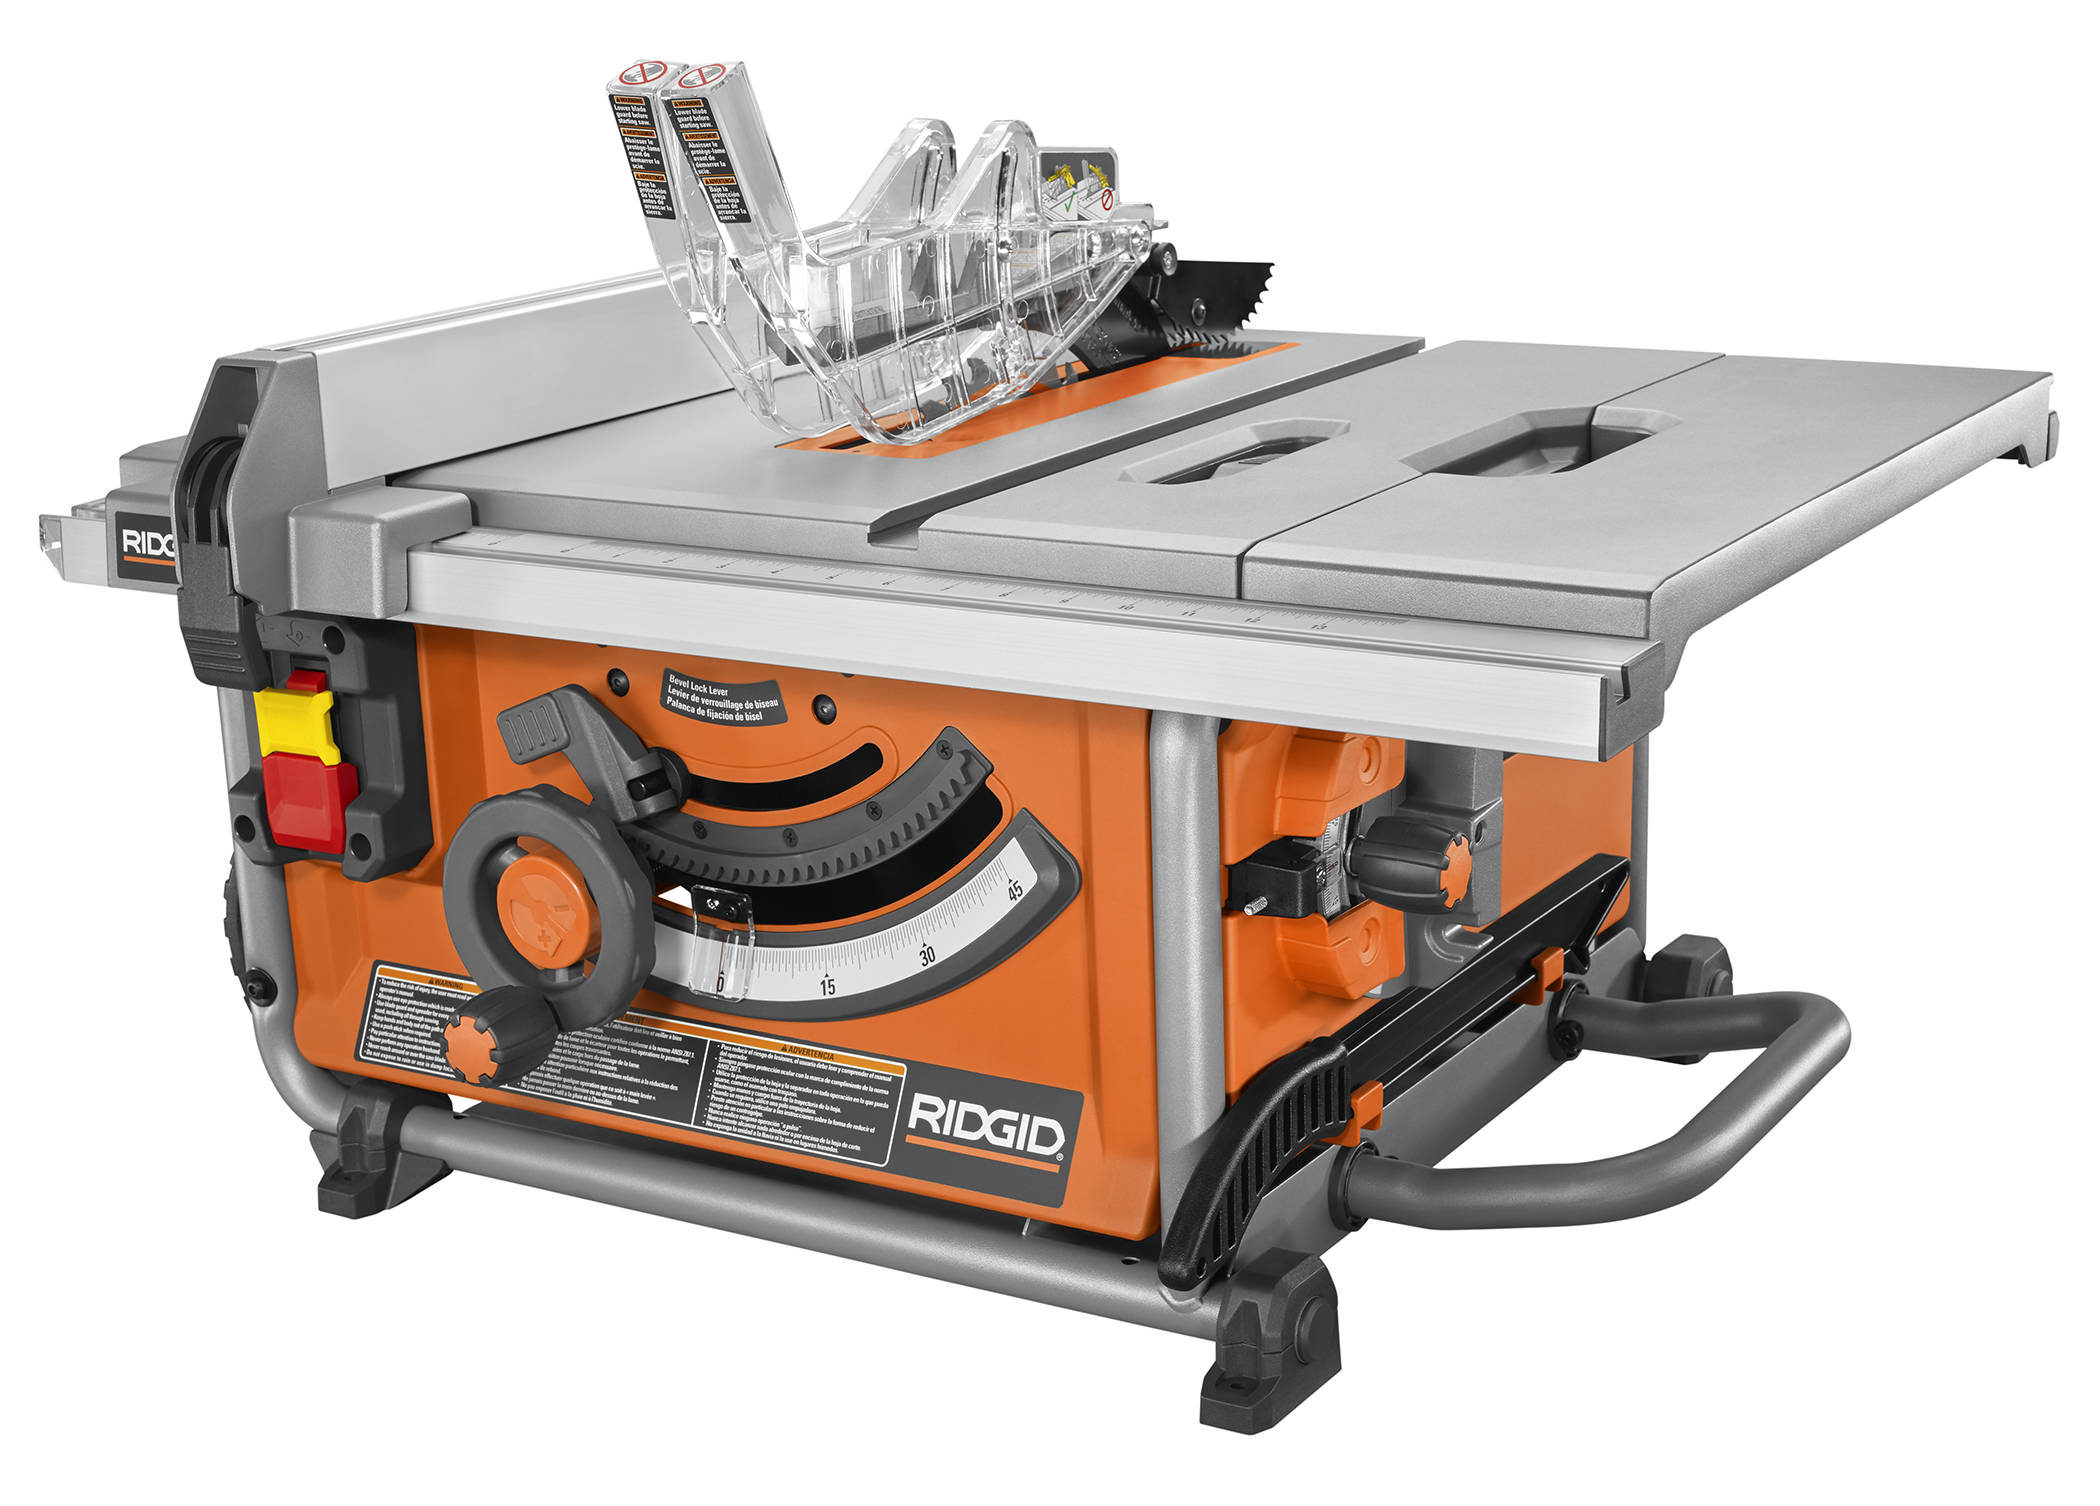 RIDGID 10 inch 15 and pact Table Saw